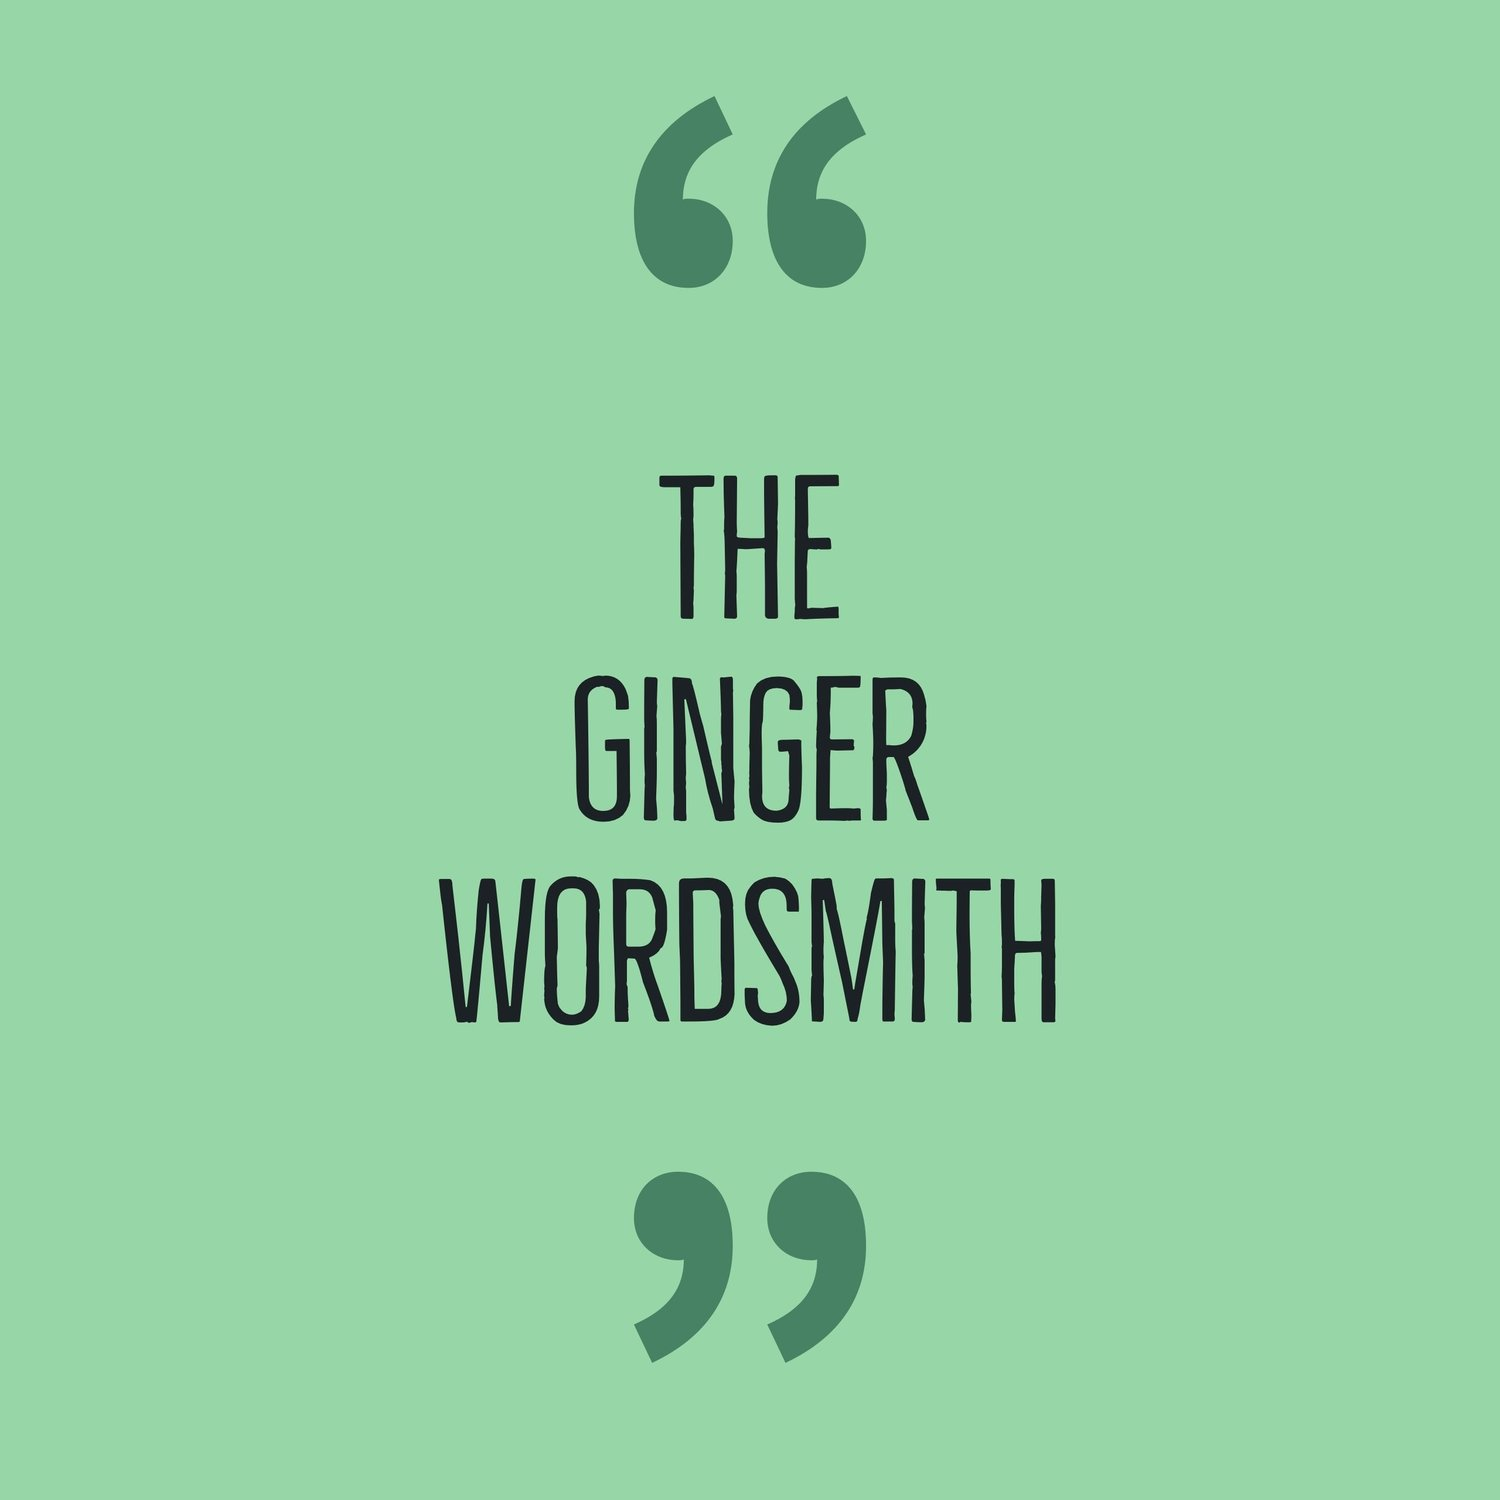 The Ginger Wordsmith